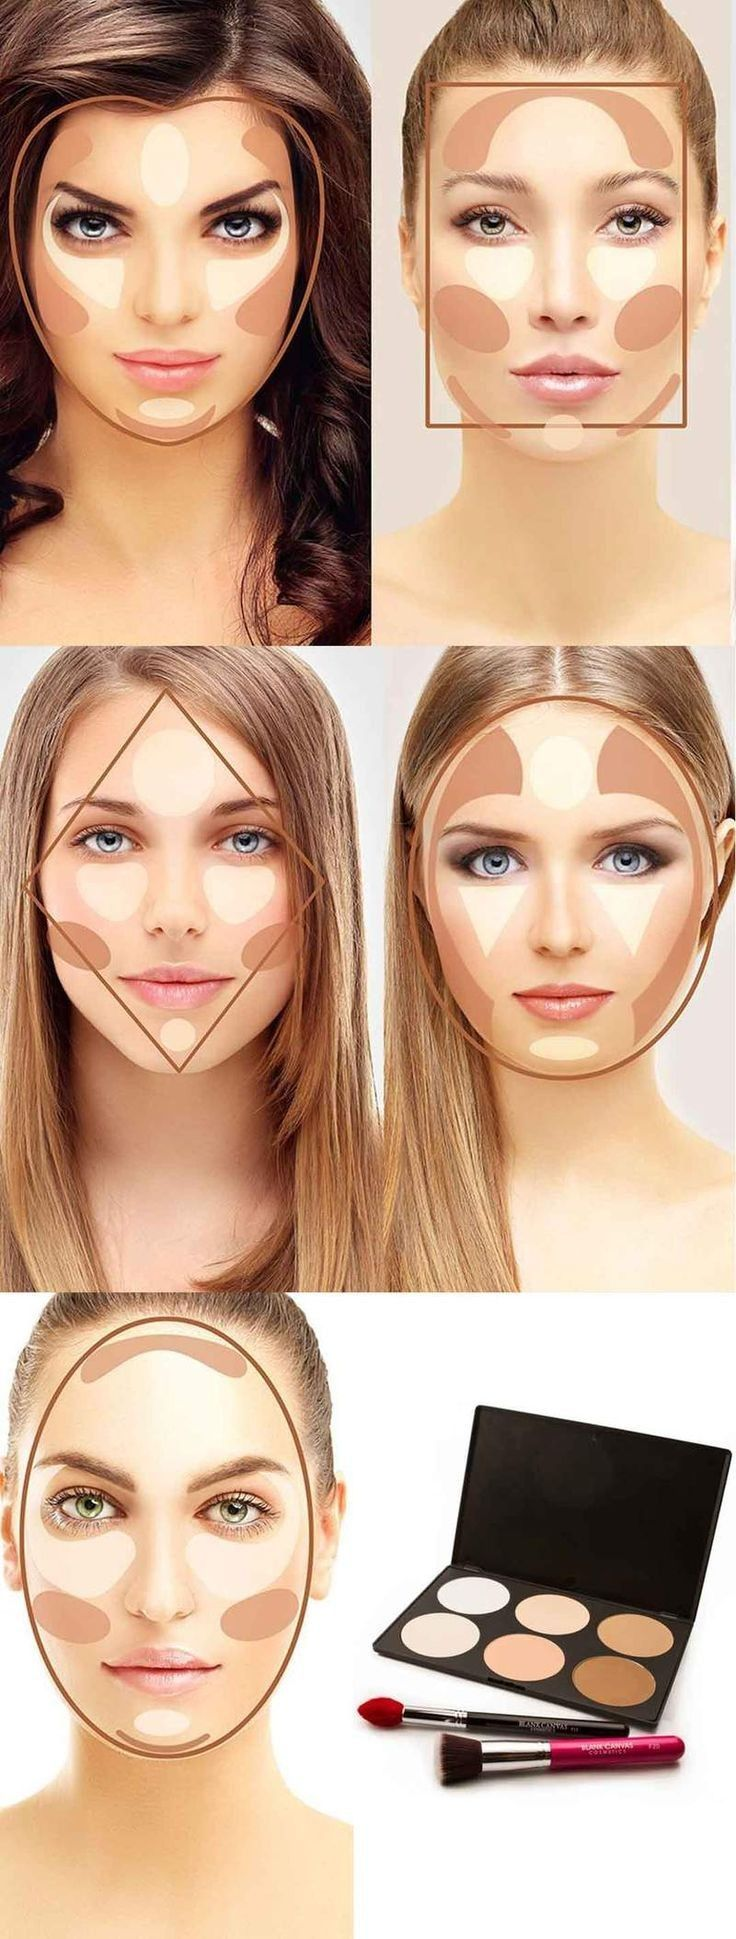 What is contouring? Contouring means nothing more than contouring school